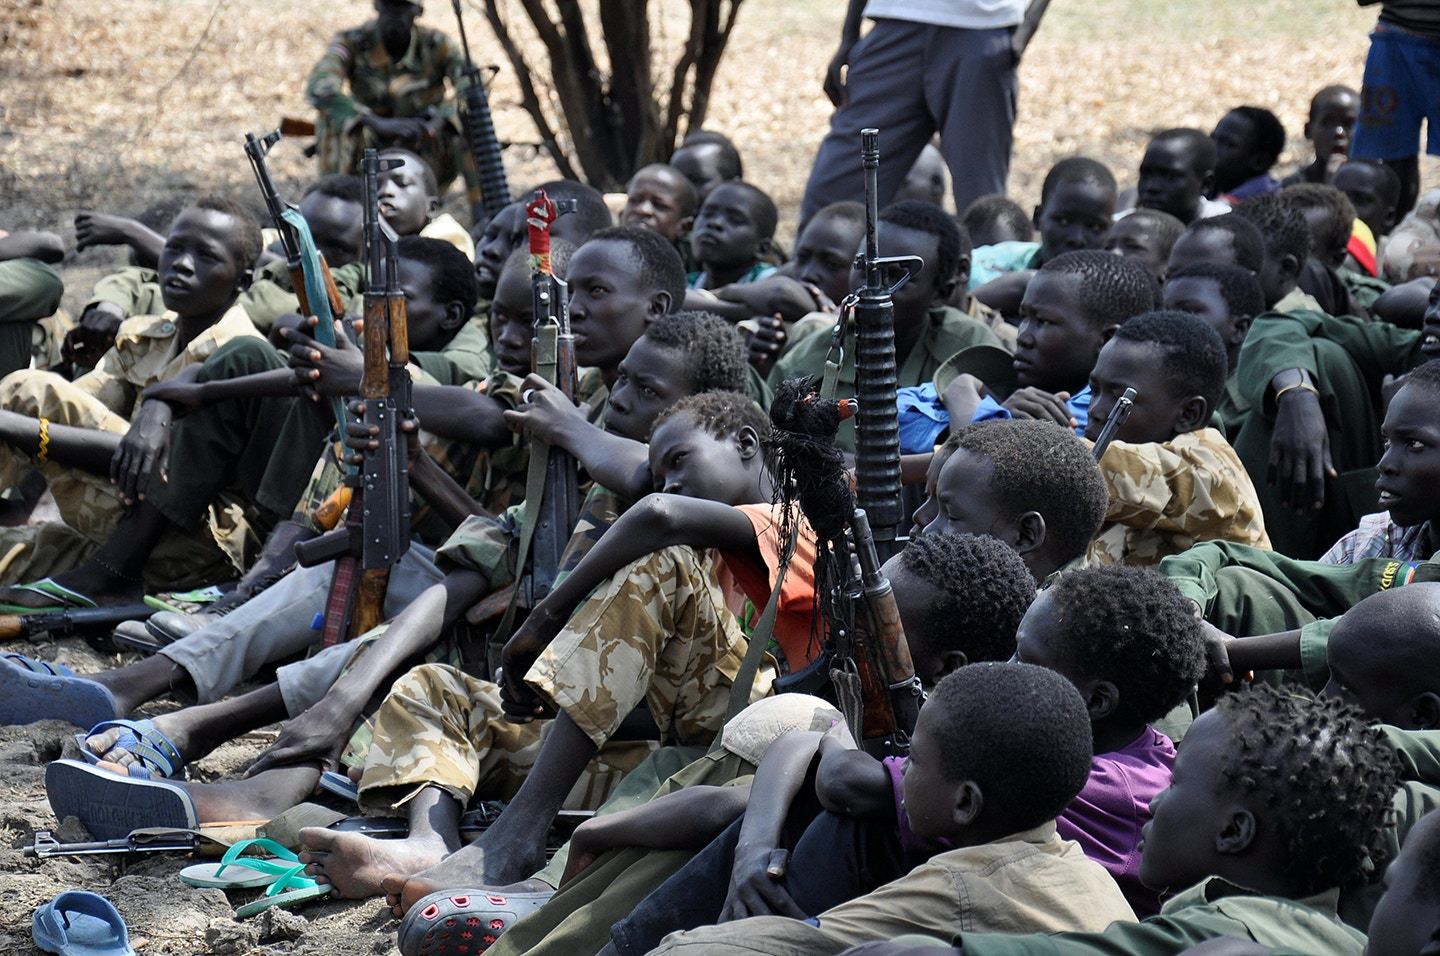 PIBOR, SOUTH SUDAN - FEBRUARY 10 : Young boys, children soldiers sit on February 10, 2015 with their rifles at a ceremony of the child soldiers disarmament, demobilization and reintegration in Pibor over sawn by UNICEF and partners. The children in Pibor, Jonglei State, surrendered their weapons and uniforms in a ceremony overseen by the South Sudan National Disarmament, Demobilization and Reintegration Commission, and the Cobra Faction and supported by UNICEF. (Photo by Samir Bol /Anadolu Agency/Getty Images)